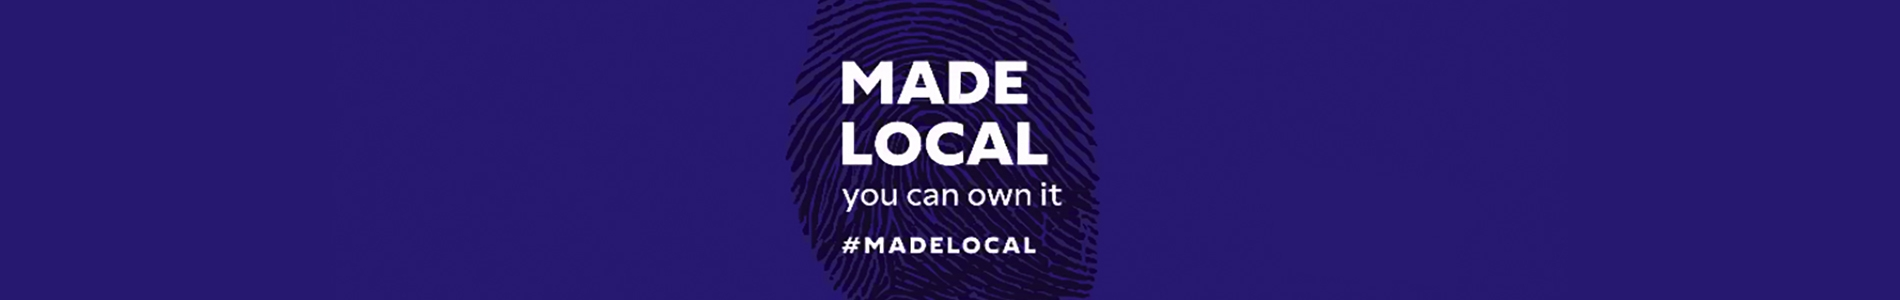 MADE LOCAL